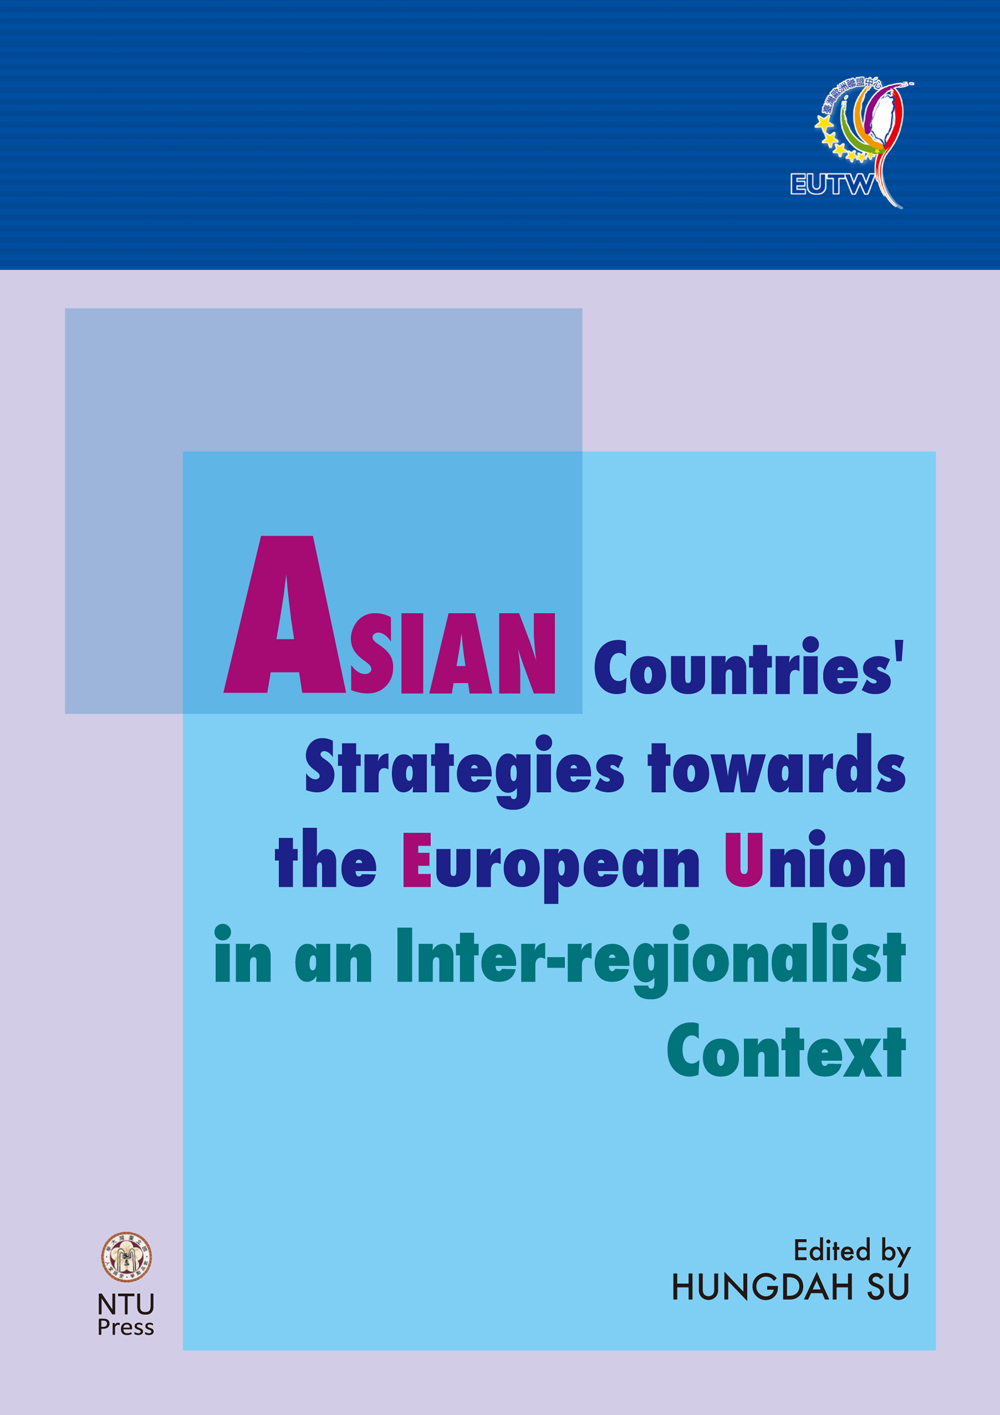 ASIAN Countries' Strategies towards the European Union in an Inter-regionalist Context